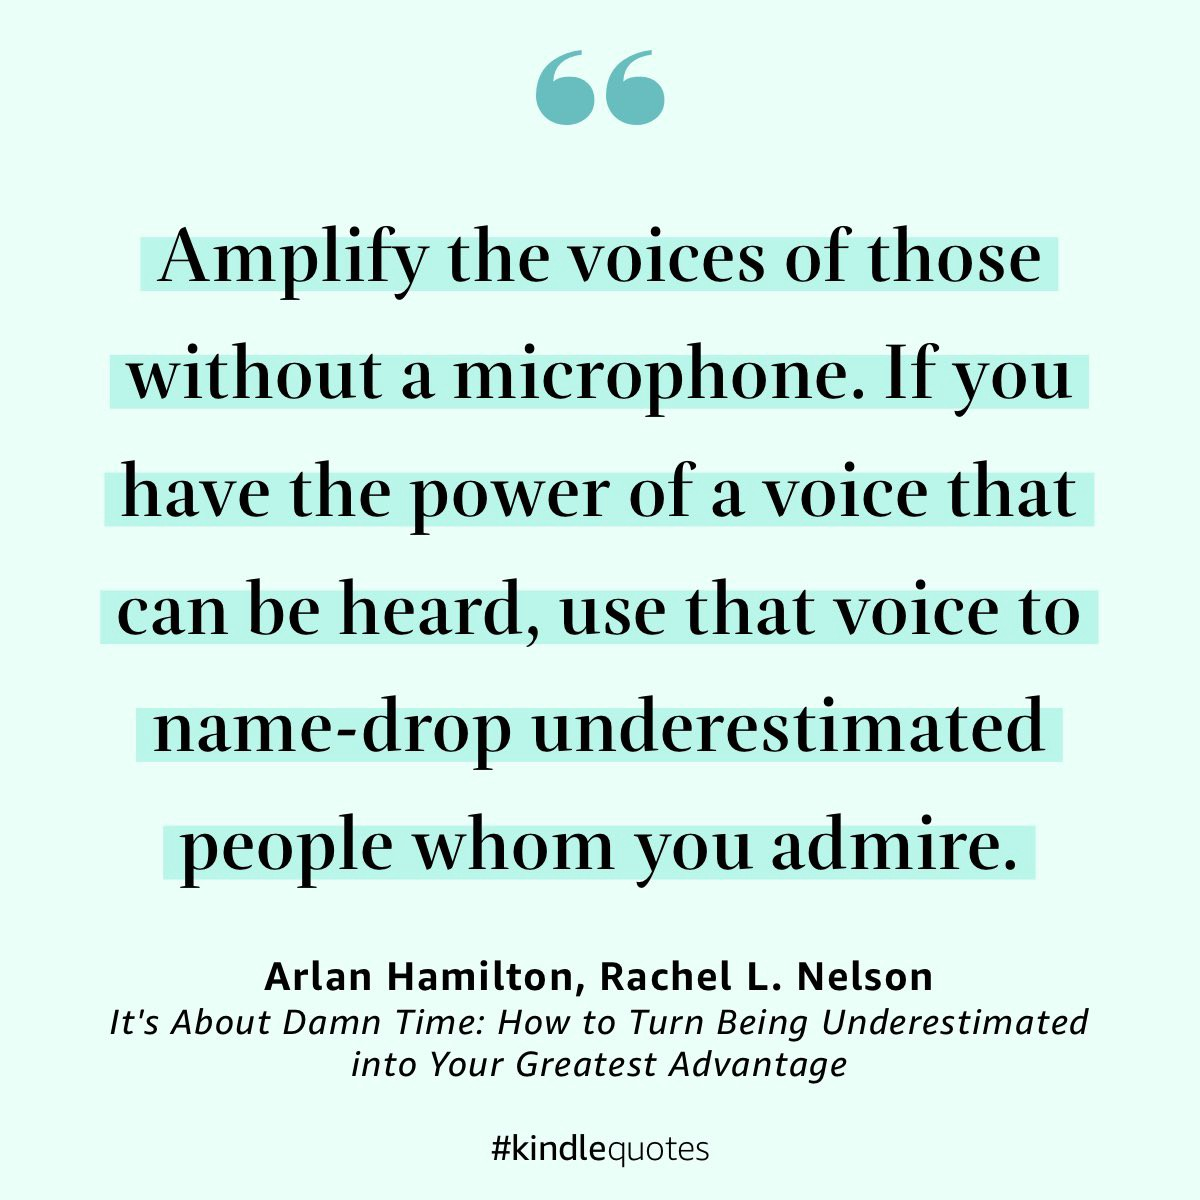 """A large dark green quotation mark on a light green background with text """"Amplify the voices of those without a microphone. If you have the power of a voice that can be heard, use that voice to name-drop underestimated people whom you admire."""" from """"It's About Damn Time: How to Turn Being Underestimated into Your Greatest Advantage"""" by Arlan Hamilton and Rachel L. Nelson"""